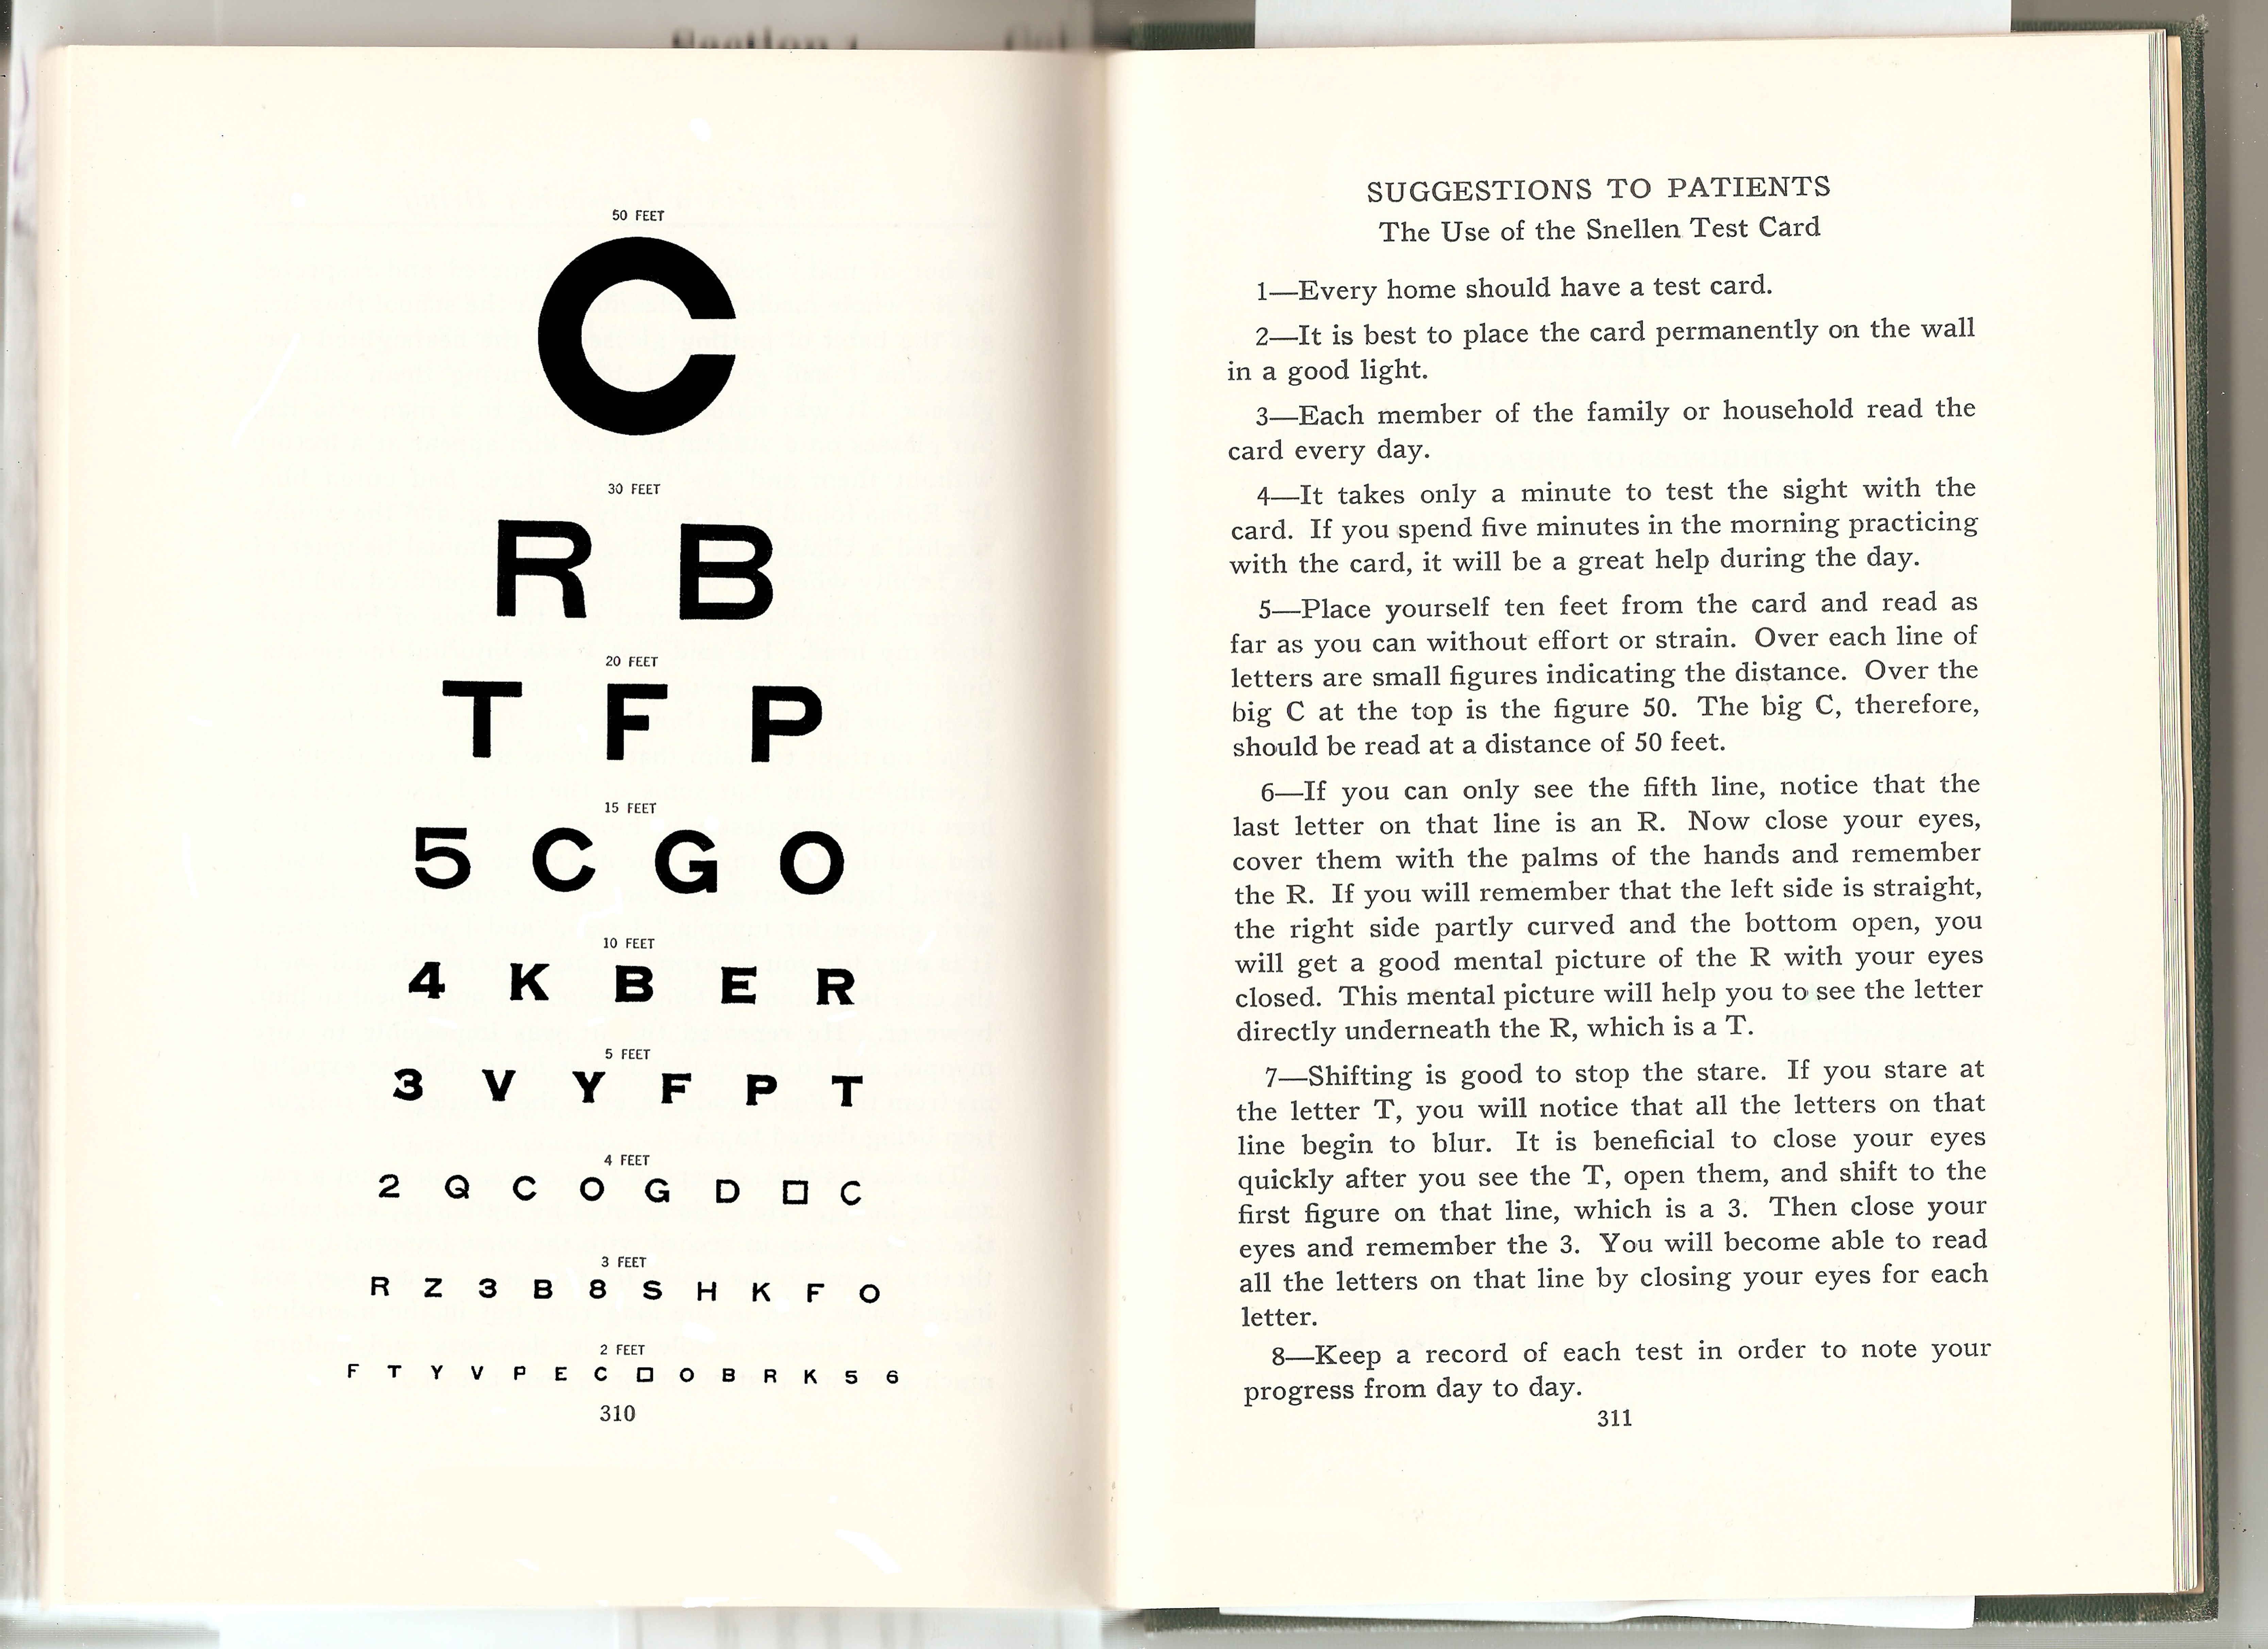 Dr. Bates, Emily's C Eyechart with Suggestions to Patients - 1940 PSWG Edition